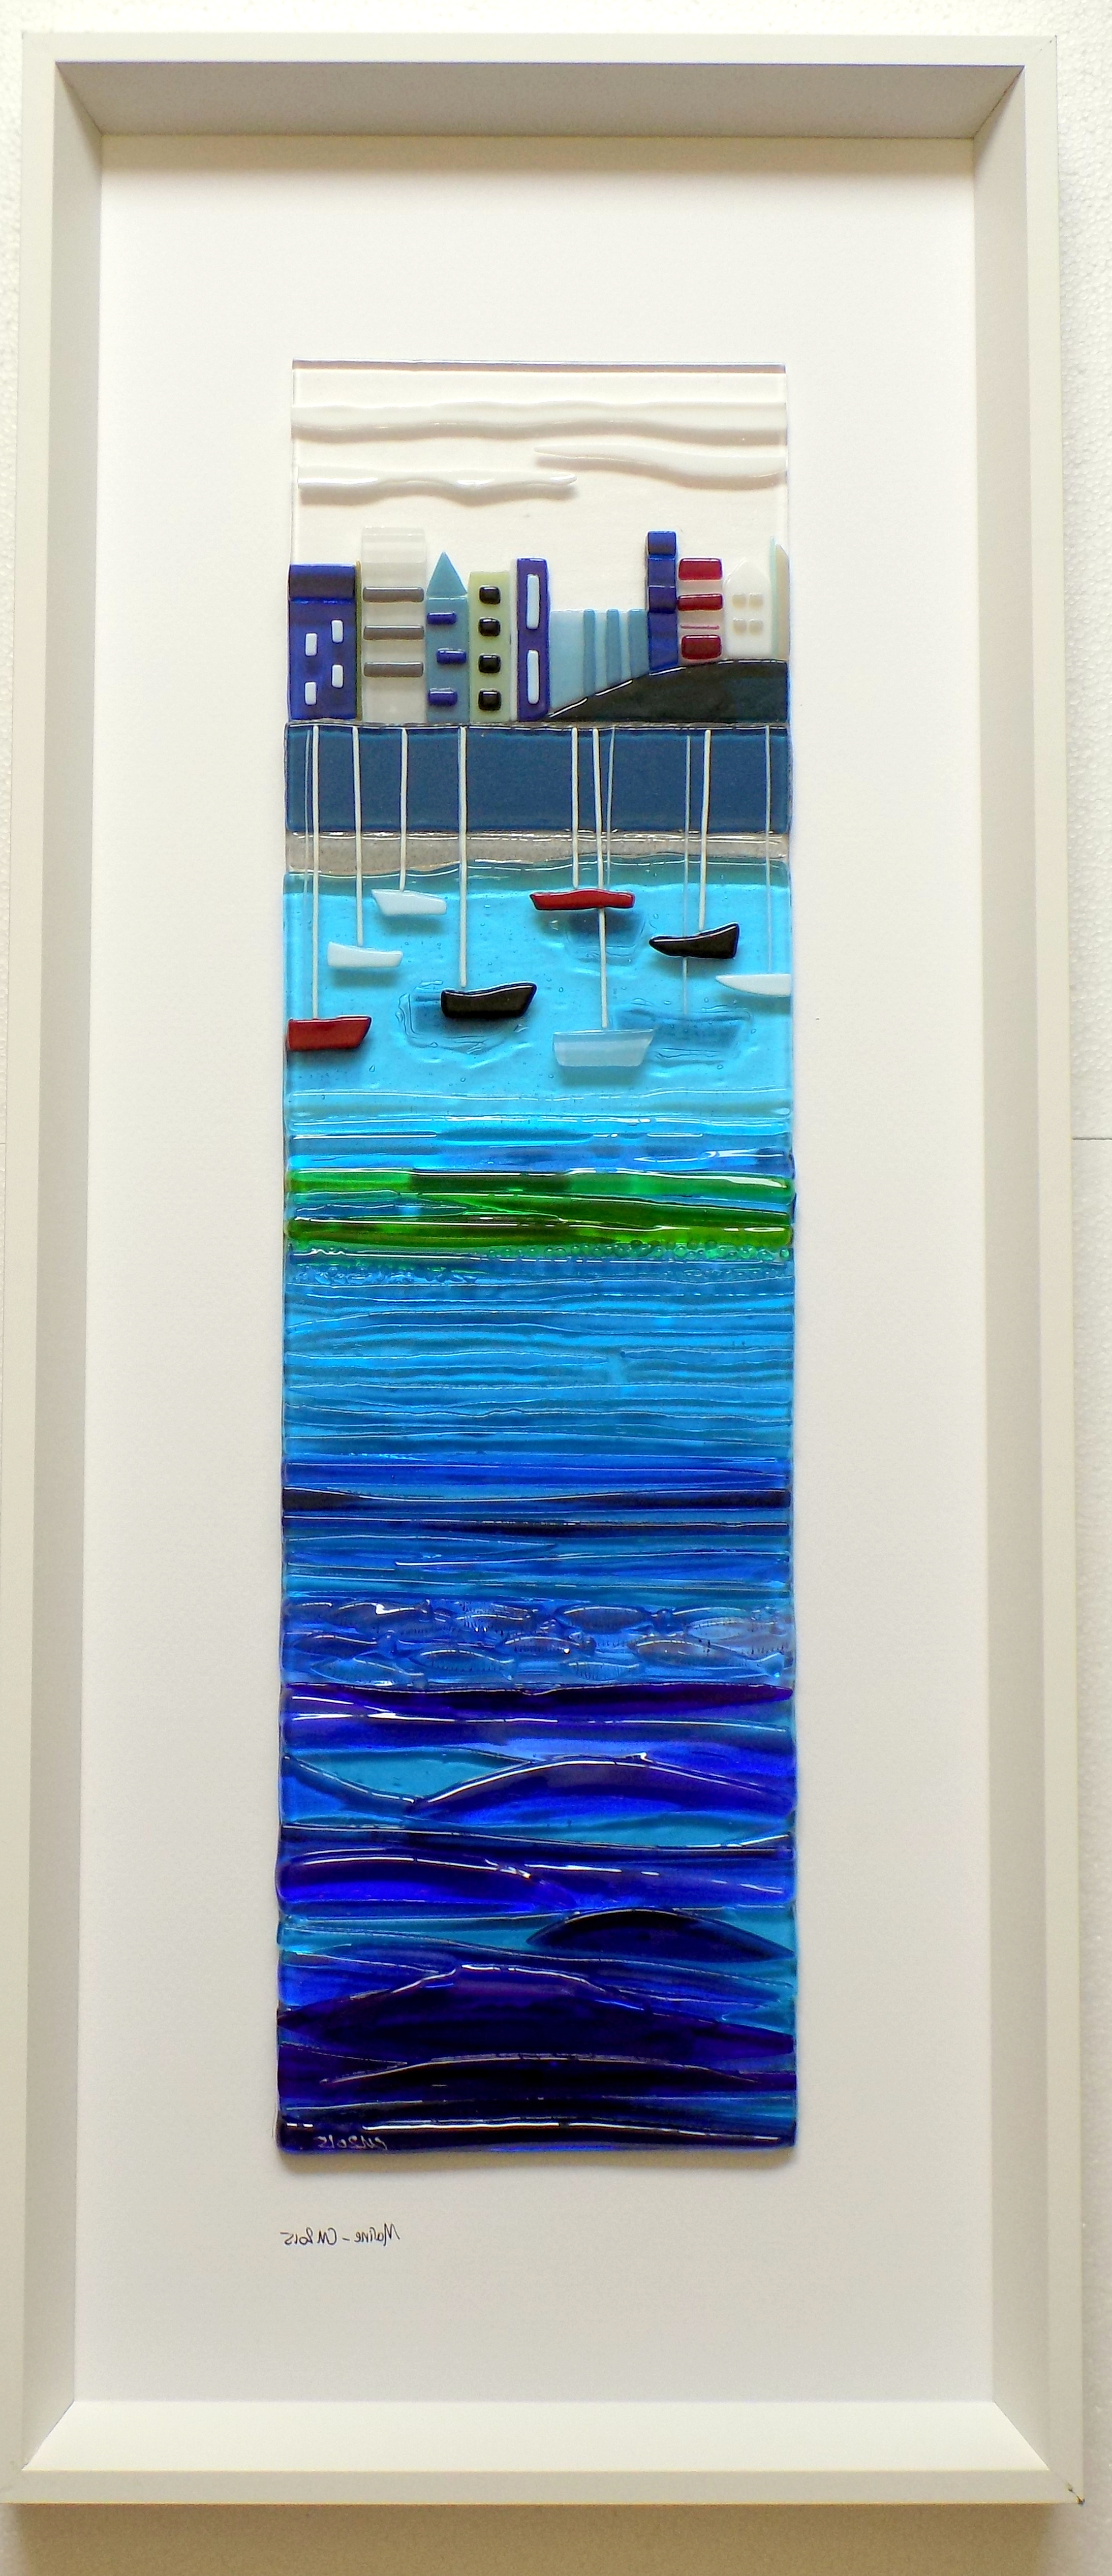 2018 Large Fused Glass Wall Art Within Large Framed Panels u2013 Inlight u2013 Contemporary Fused Glass : contemporary glass wall art - www.pureclipart.com